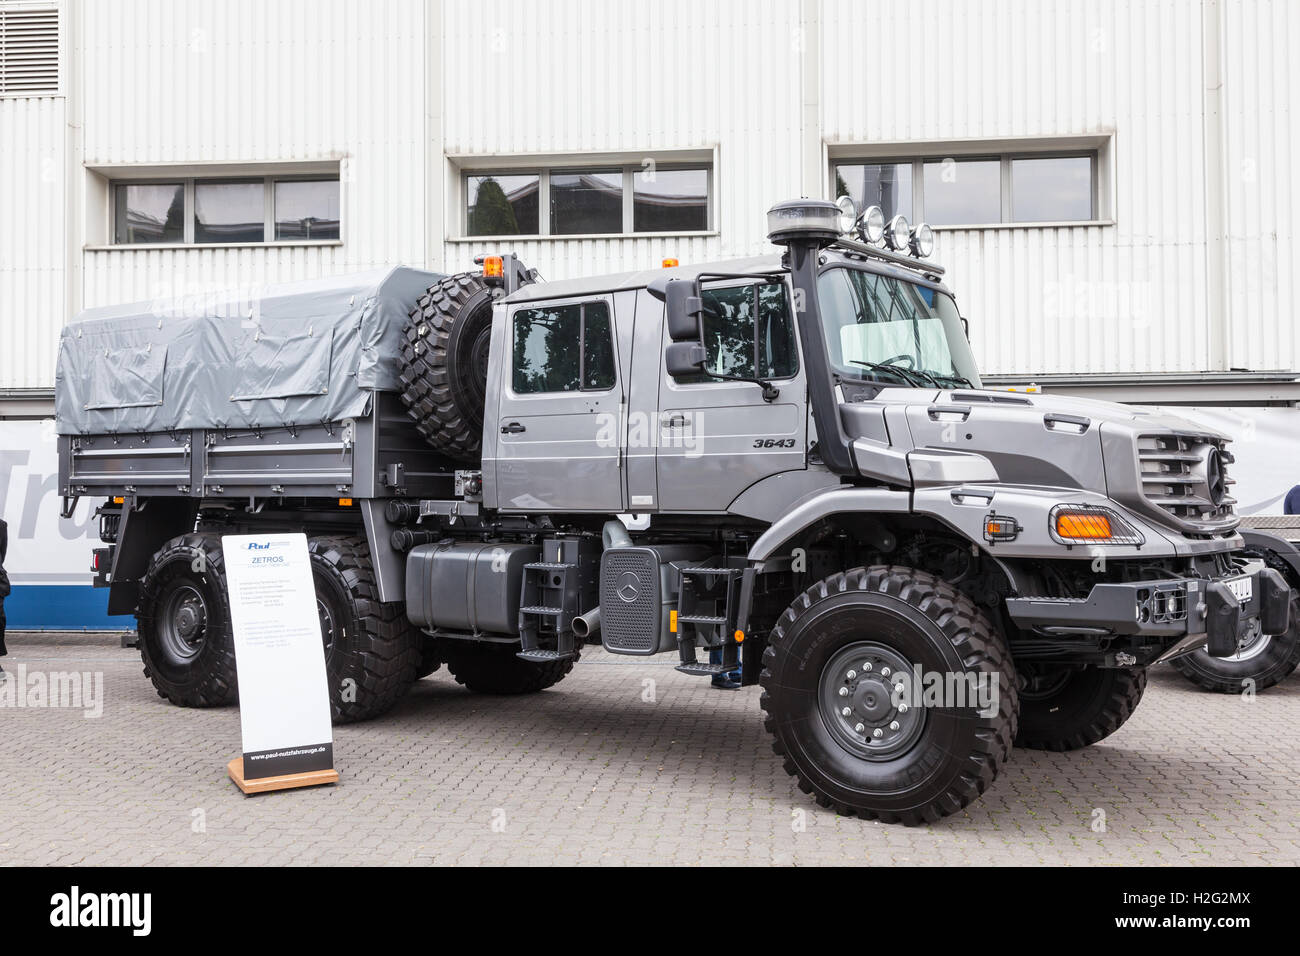 Mercedes benz zetros 6x6 crew cab truck stock photo for Mercedes benz zetros 6x6 expedition vehicle